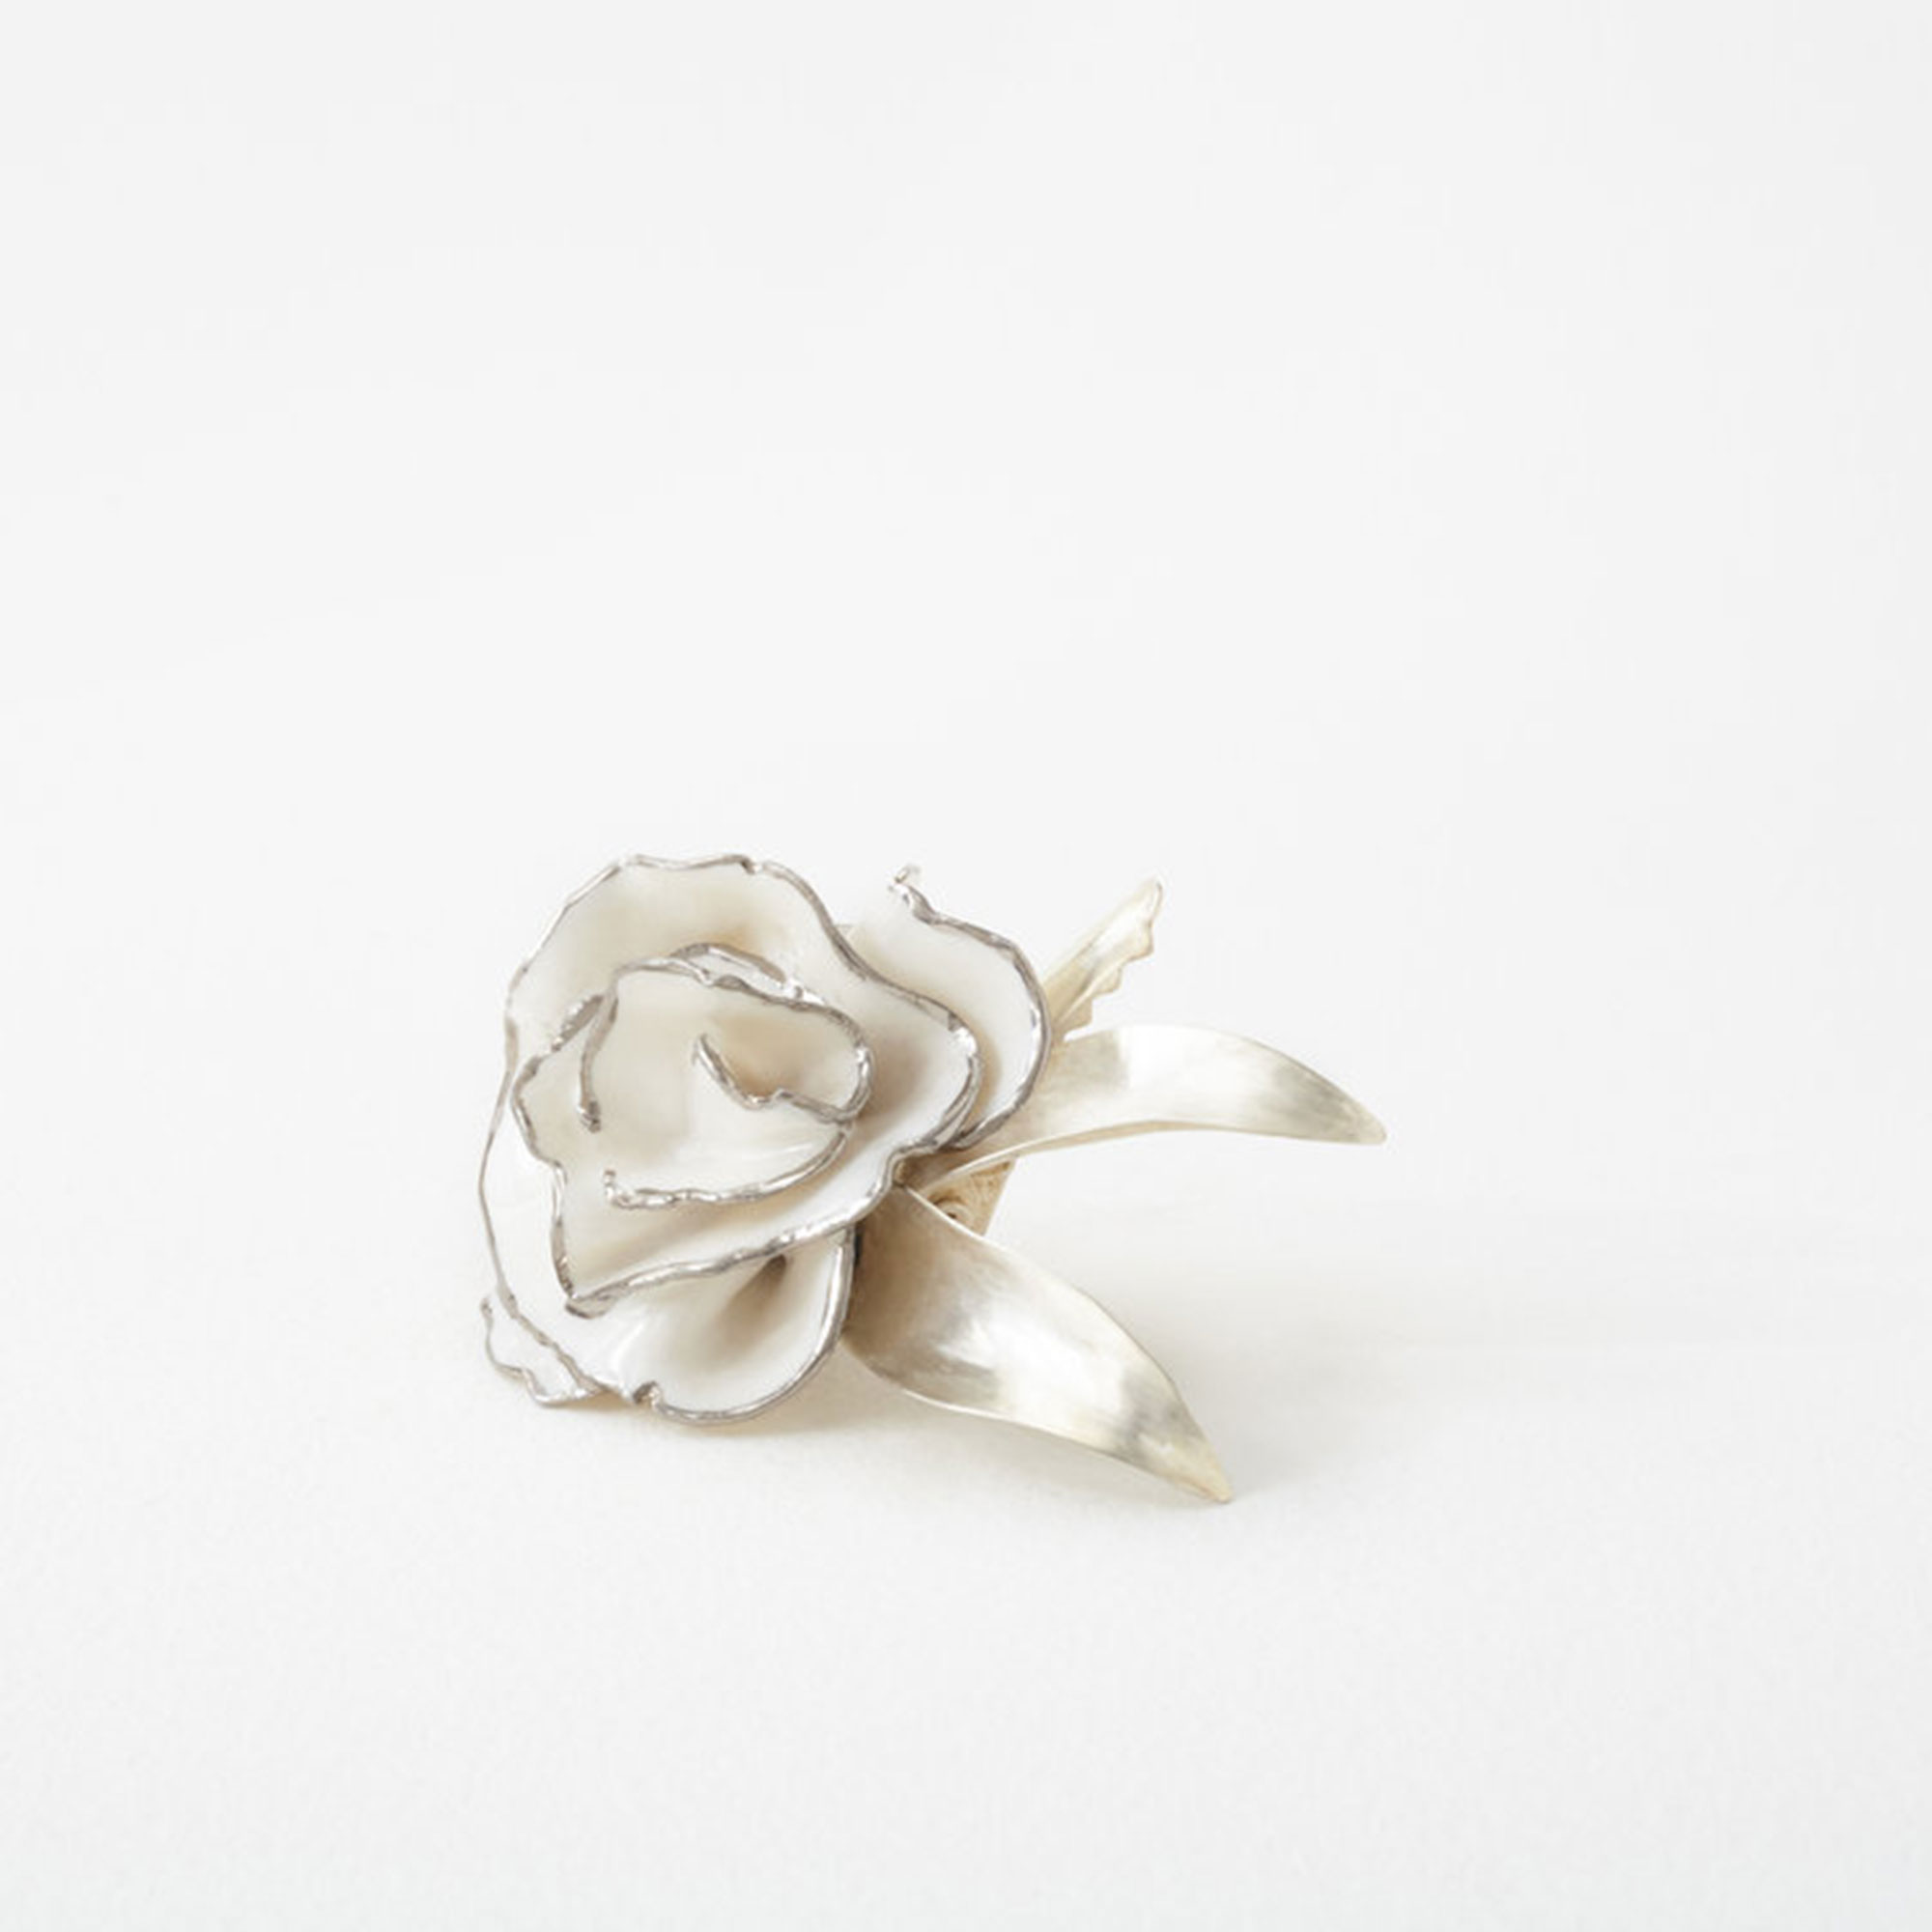 Valentine's Day Gift Guide 2019: Beauty and Fashion Ideas for the Lady in Your Life - Perfect for brides to be (or anyone leaning into the season's hair accessories trend!), these handmade floral hairpieces are truly one of a kind. $300, sweetcarolinewedding.com